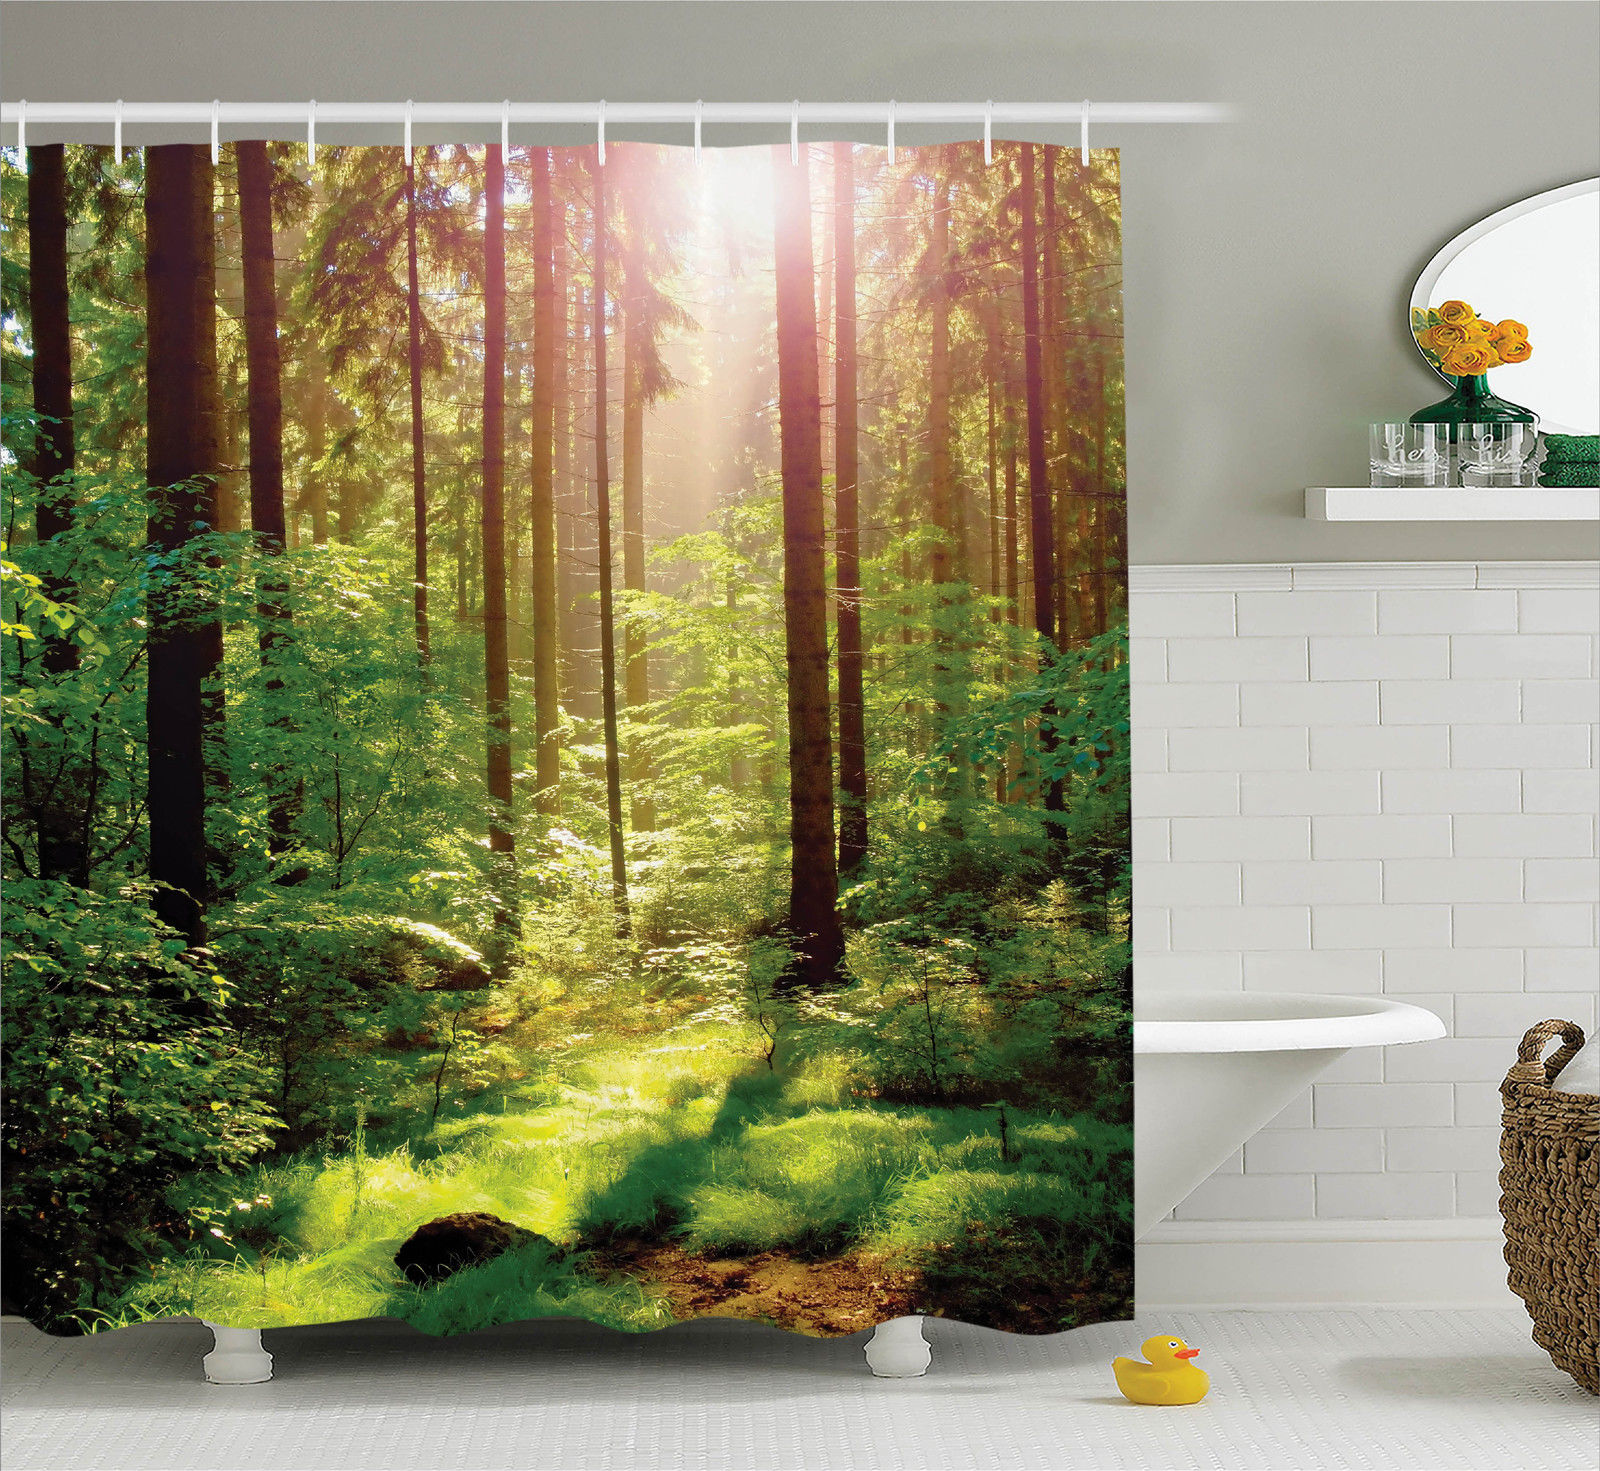 Farm House Decor Shower Curtain Set, Forest Spring Time Sunset Moss Woods Leaf Wilderness Fantasy Magical View, Bathroom Accessories, 69W X 70L Inches, By Ambesonne